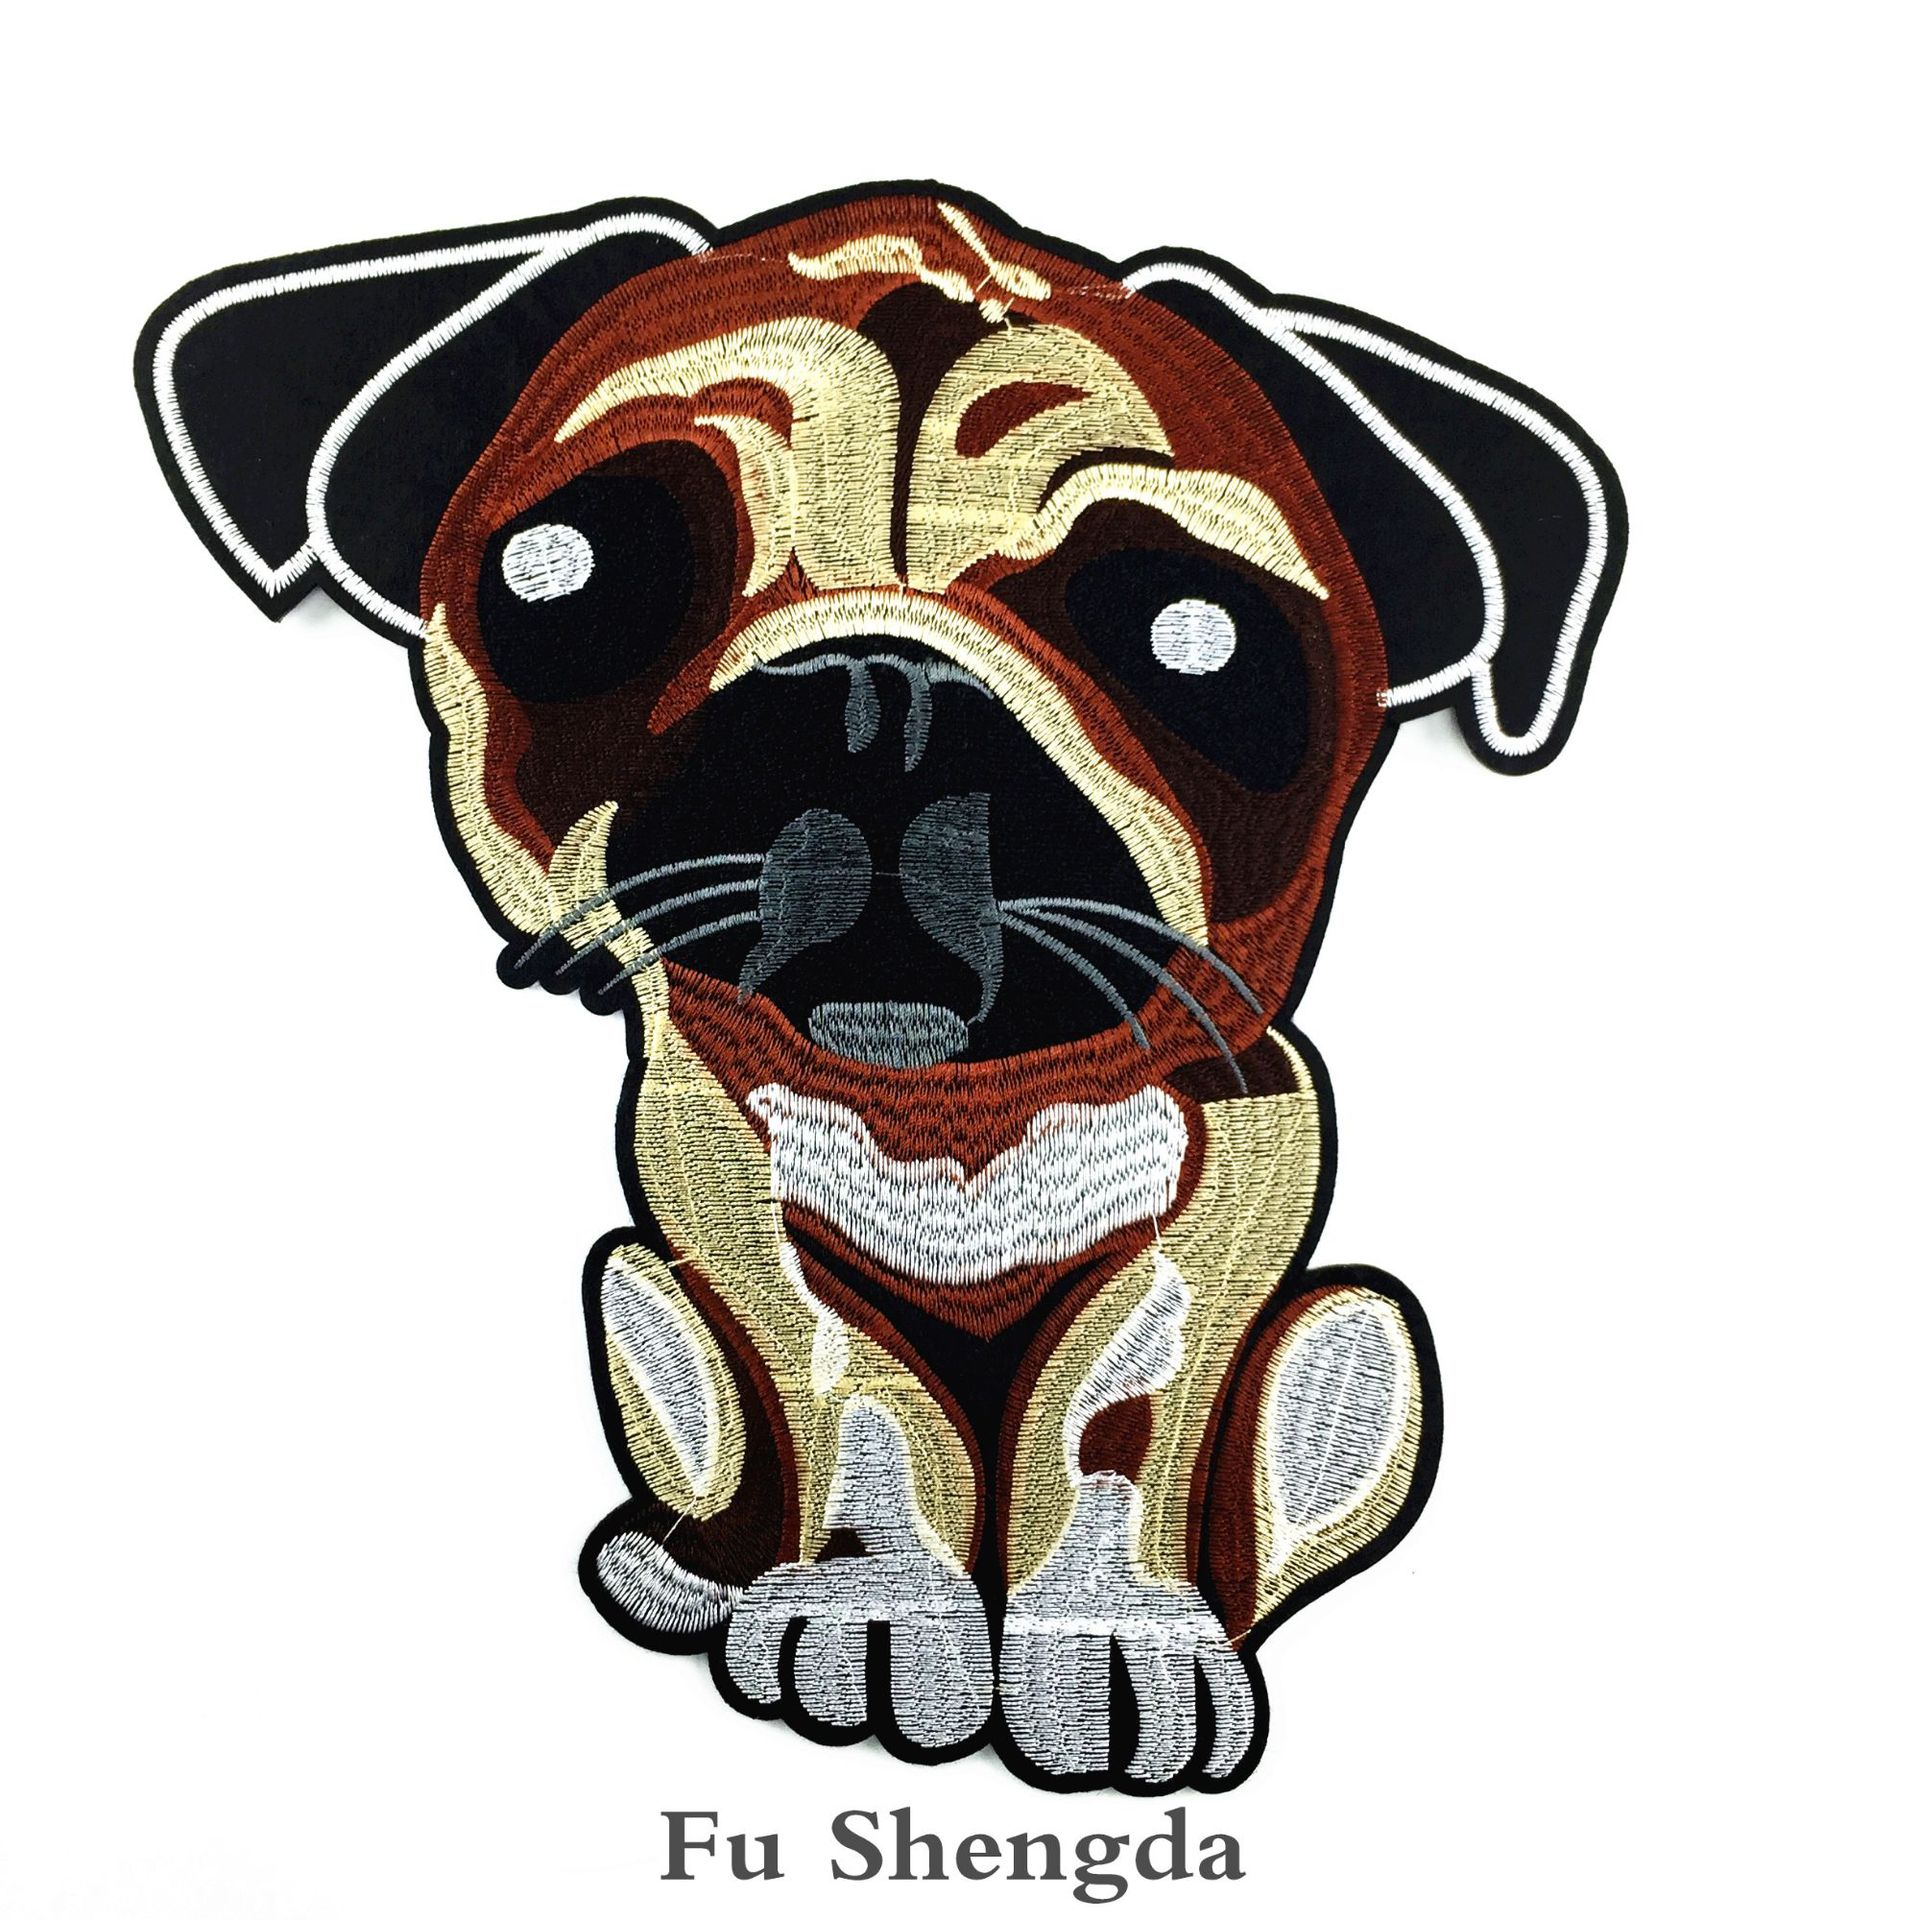 1PCs New 3D Craft Sewing Embroidered Iron On Applique Patch Dog DIY Clothes Accessories It Can Be Used In Jeans And T-shirt DIY